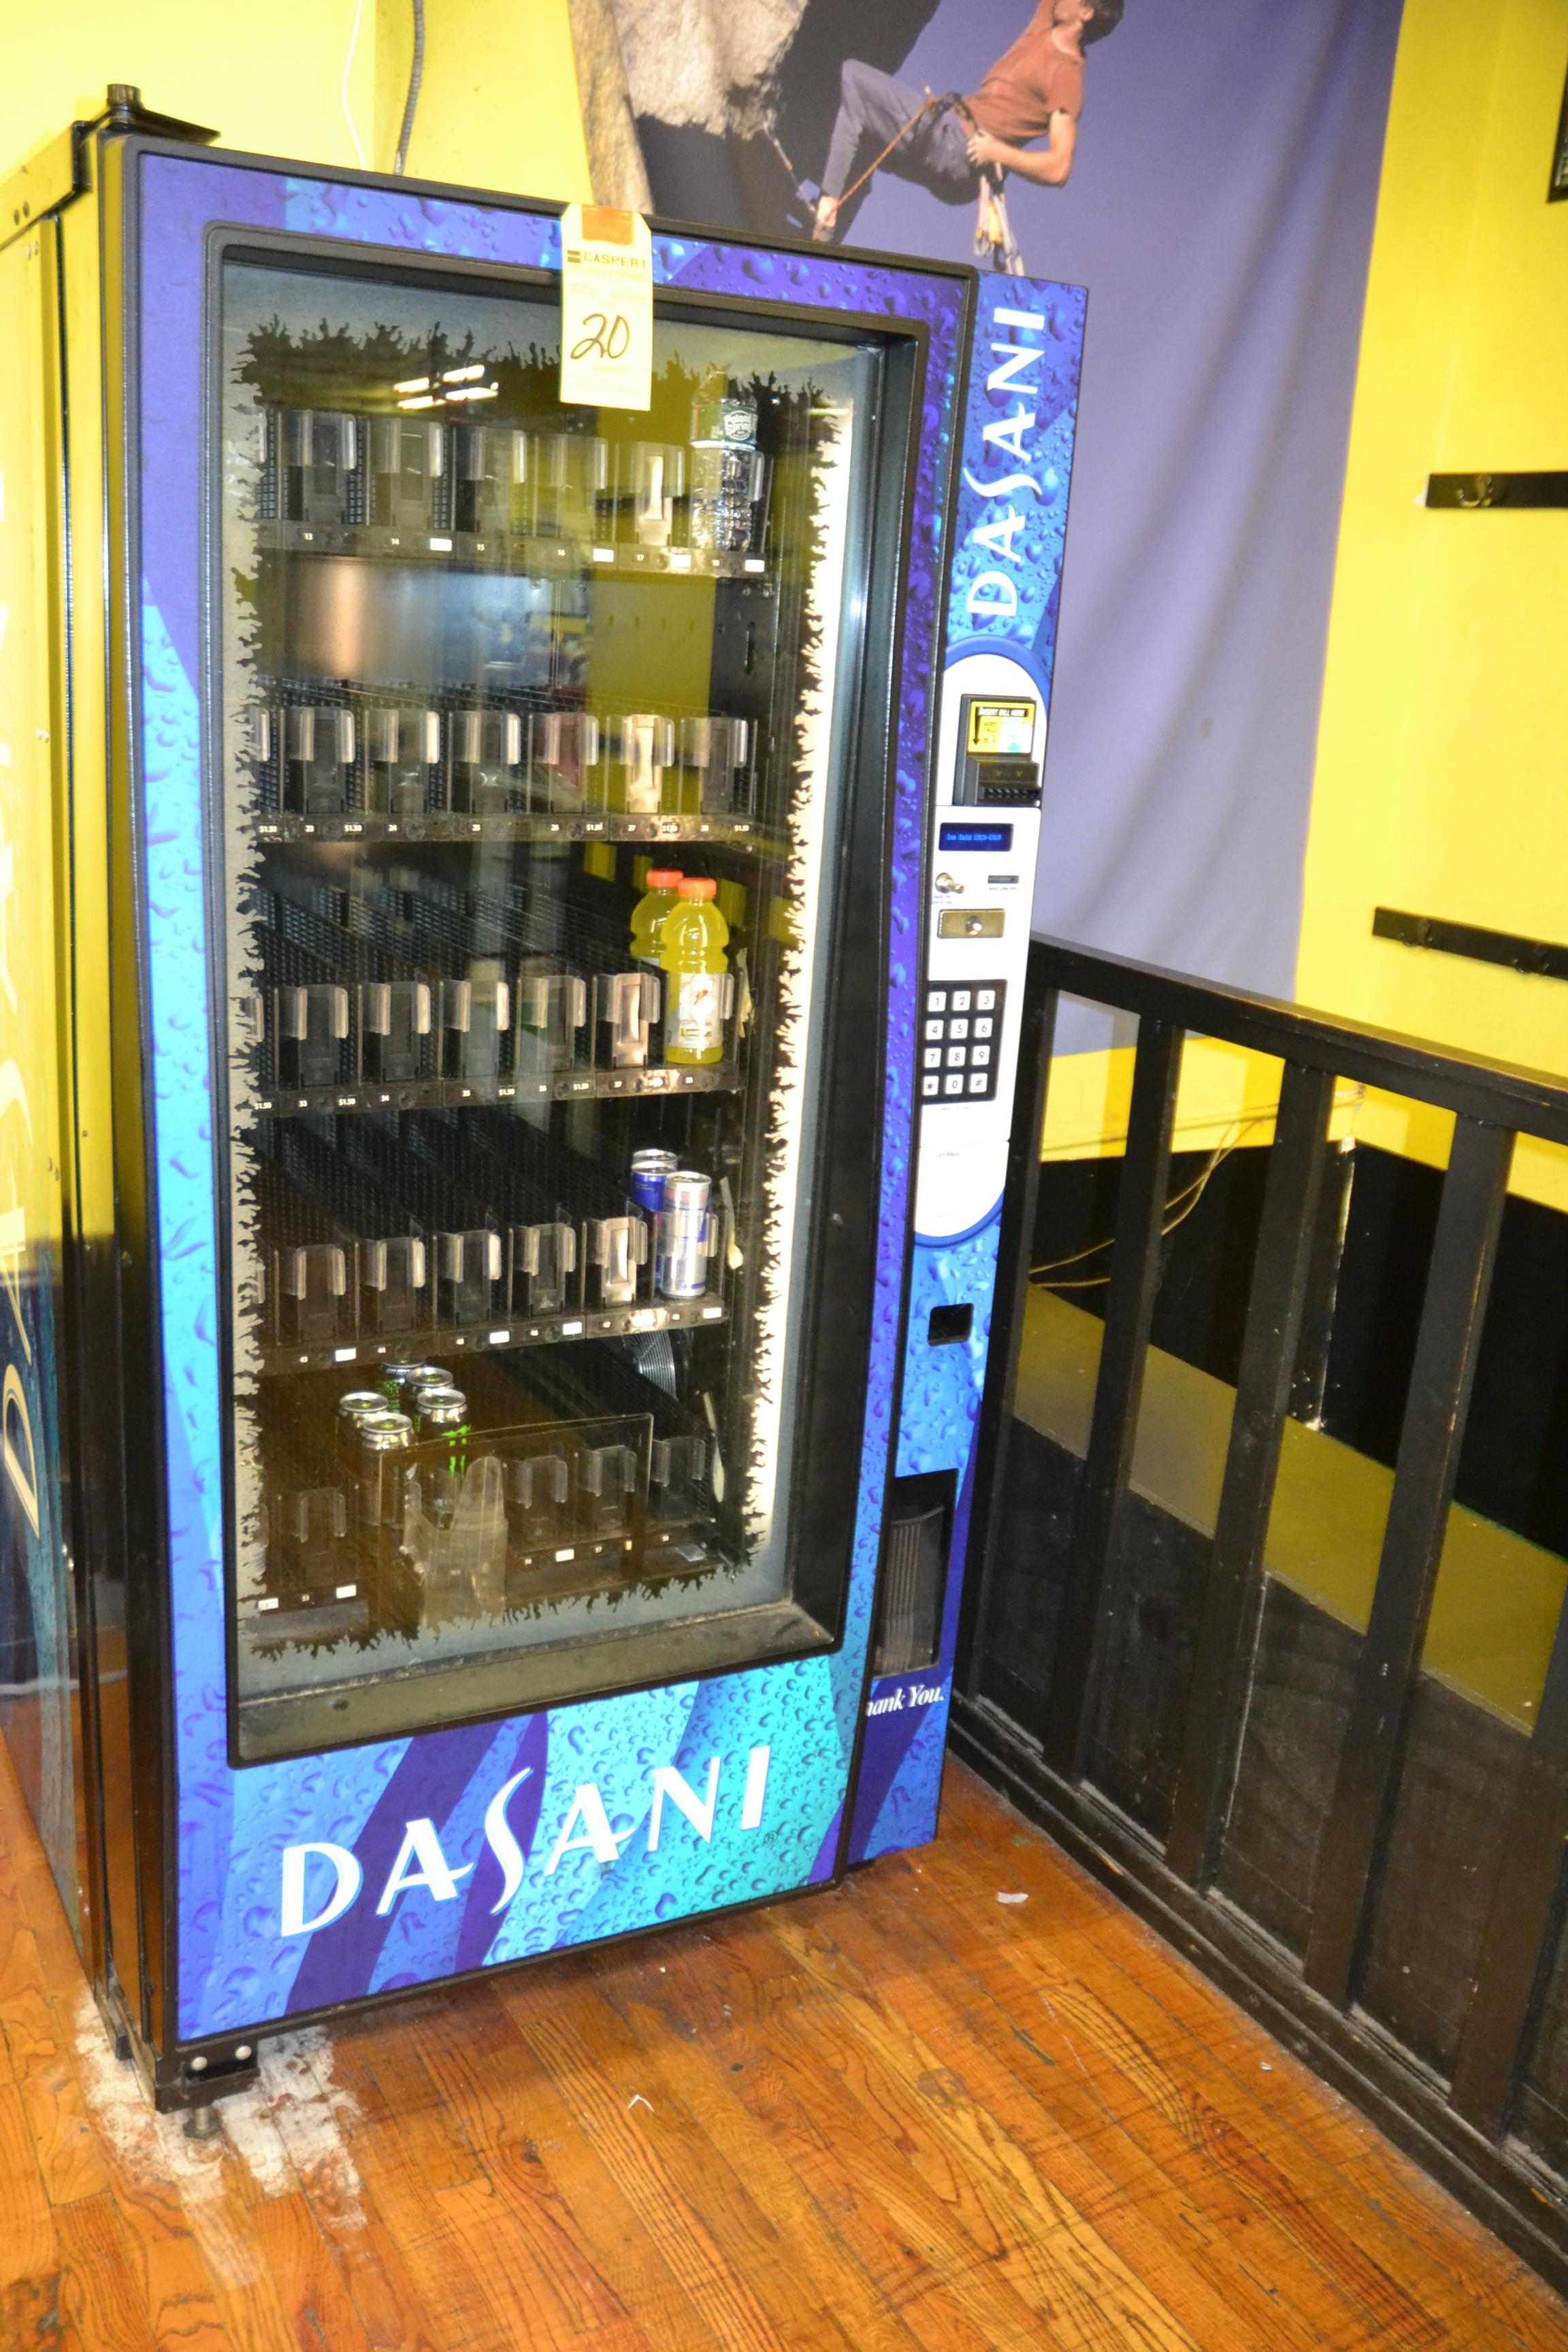 Lot 20 - DASANI VENDING MACHINE